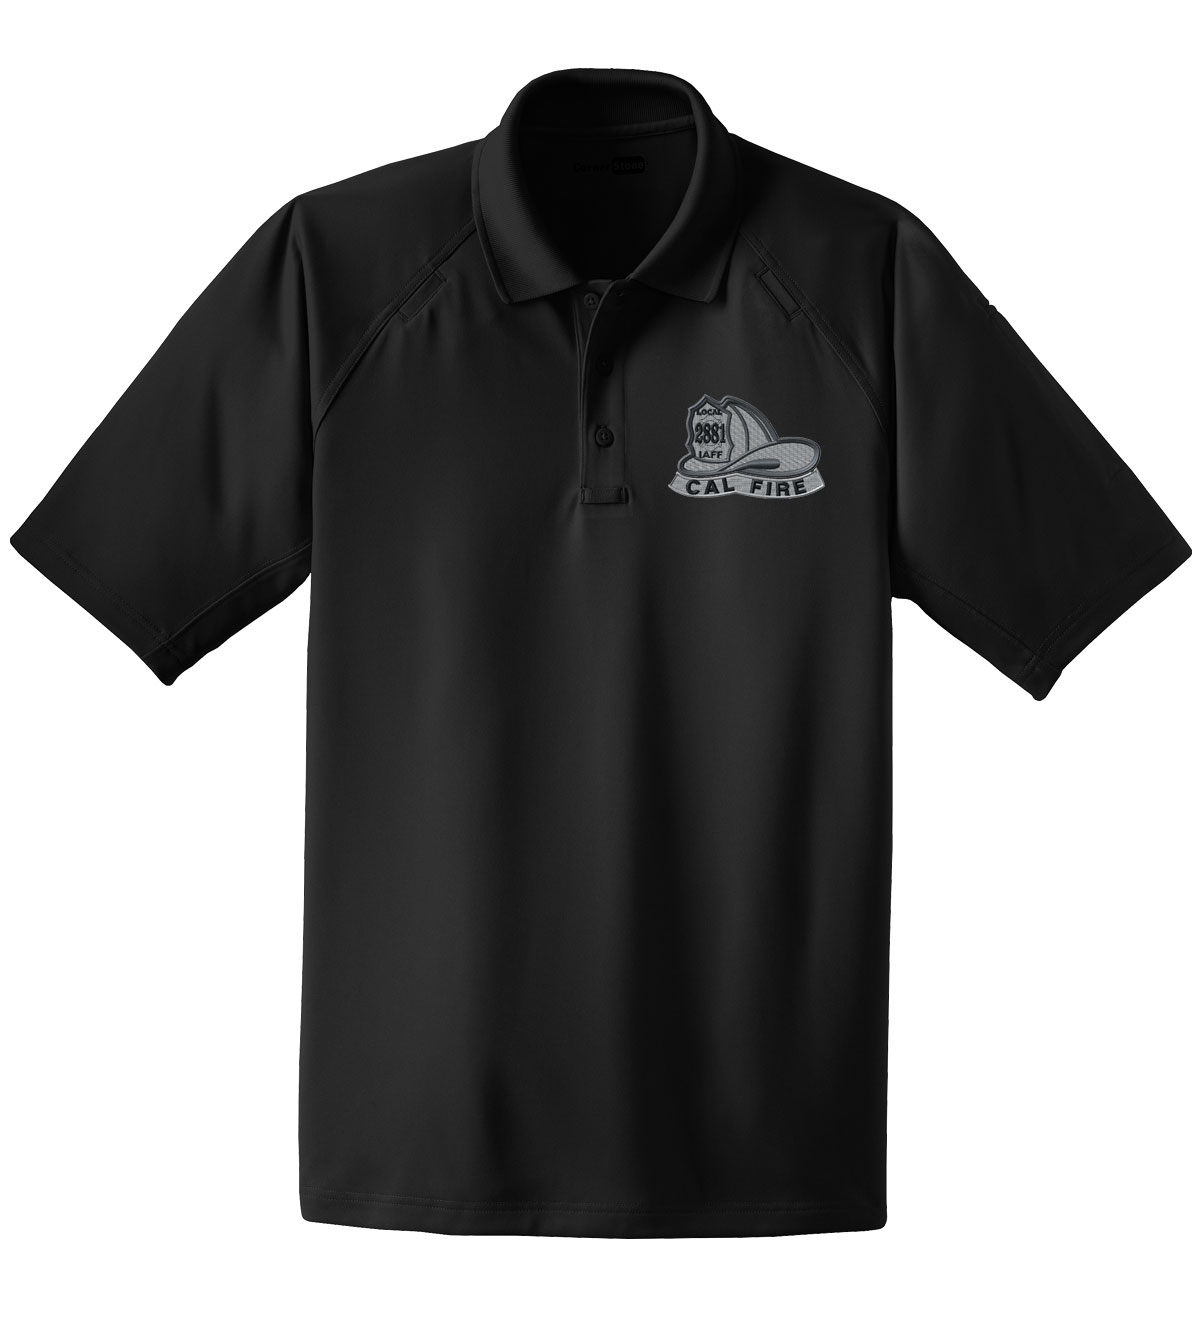 Local 2881 Union Tactical Polo